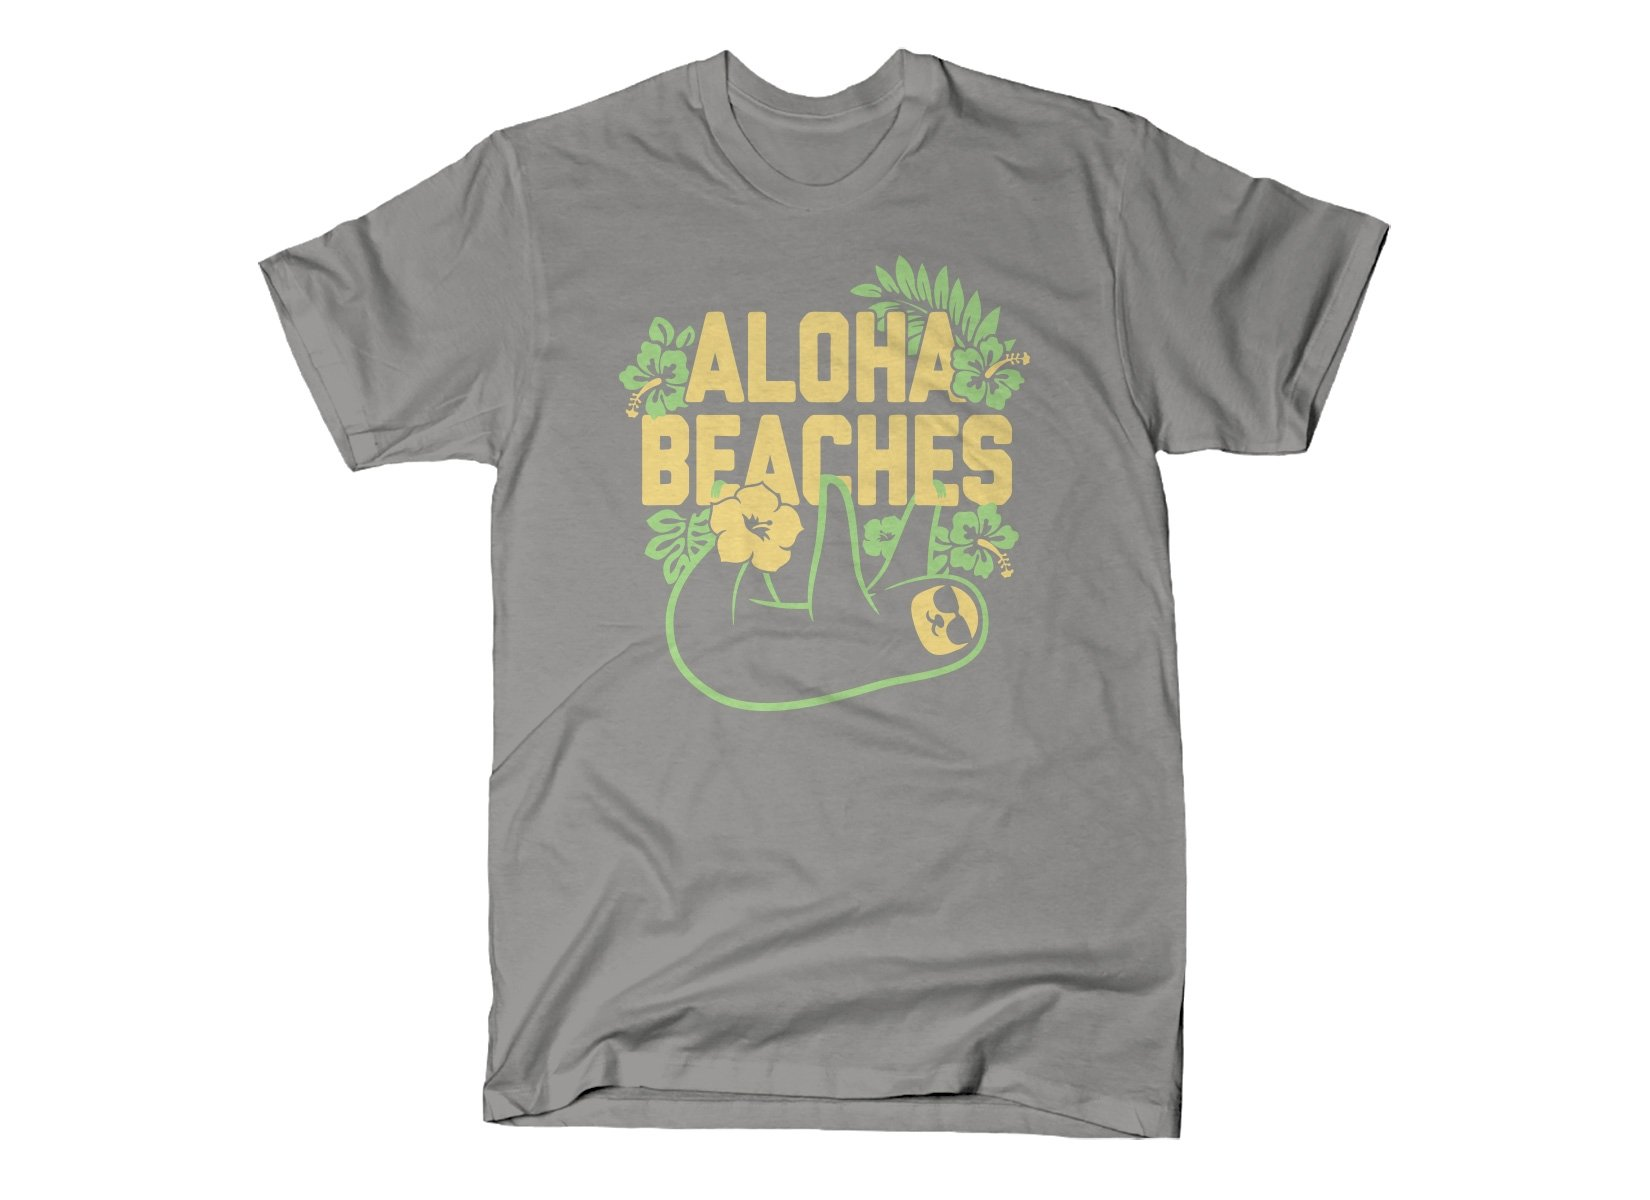 Aloha Beaches on Mens T-Shirt